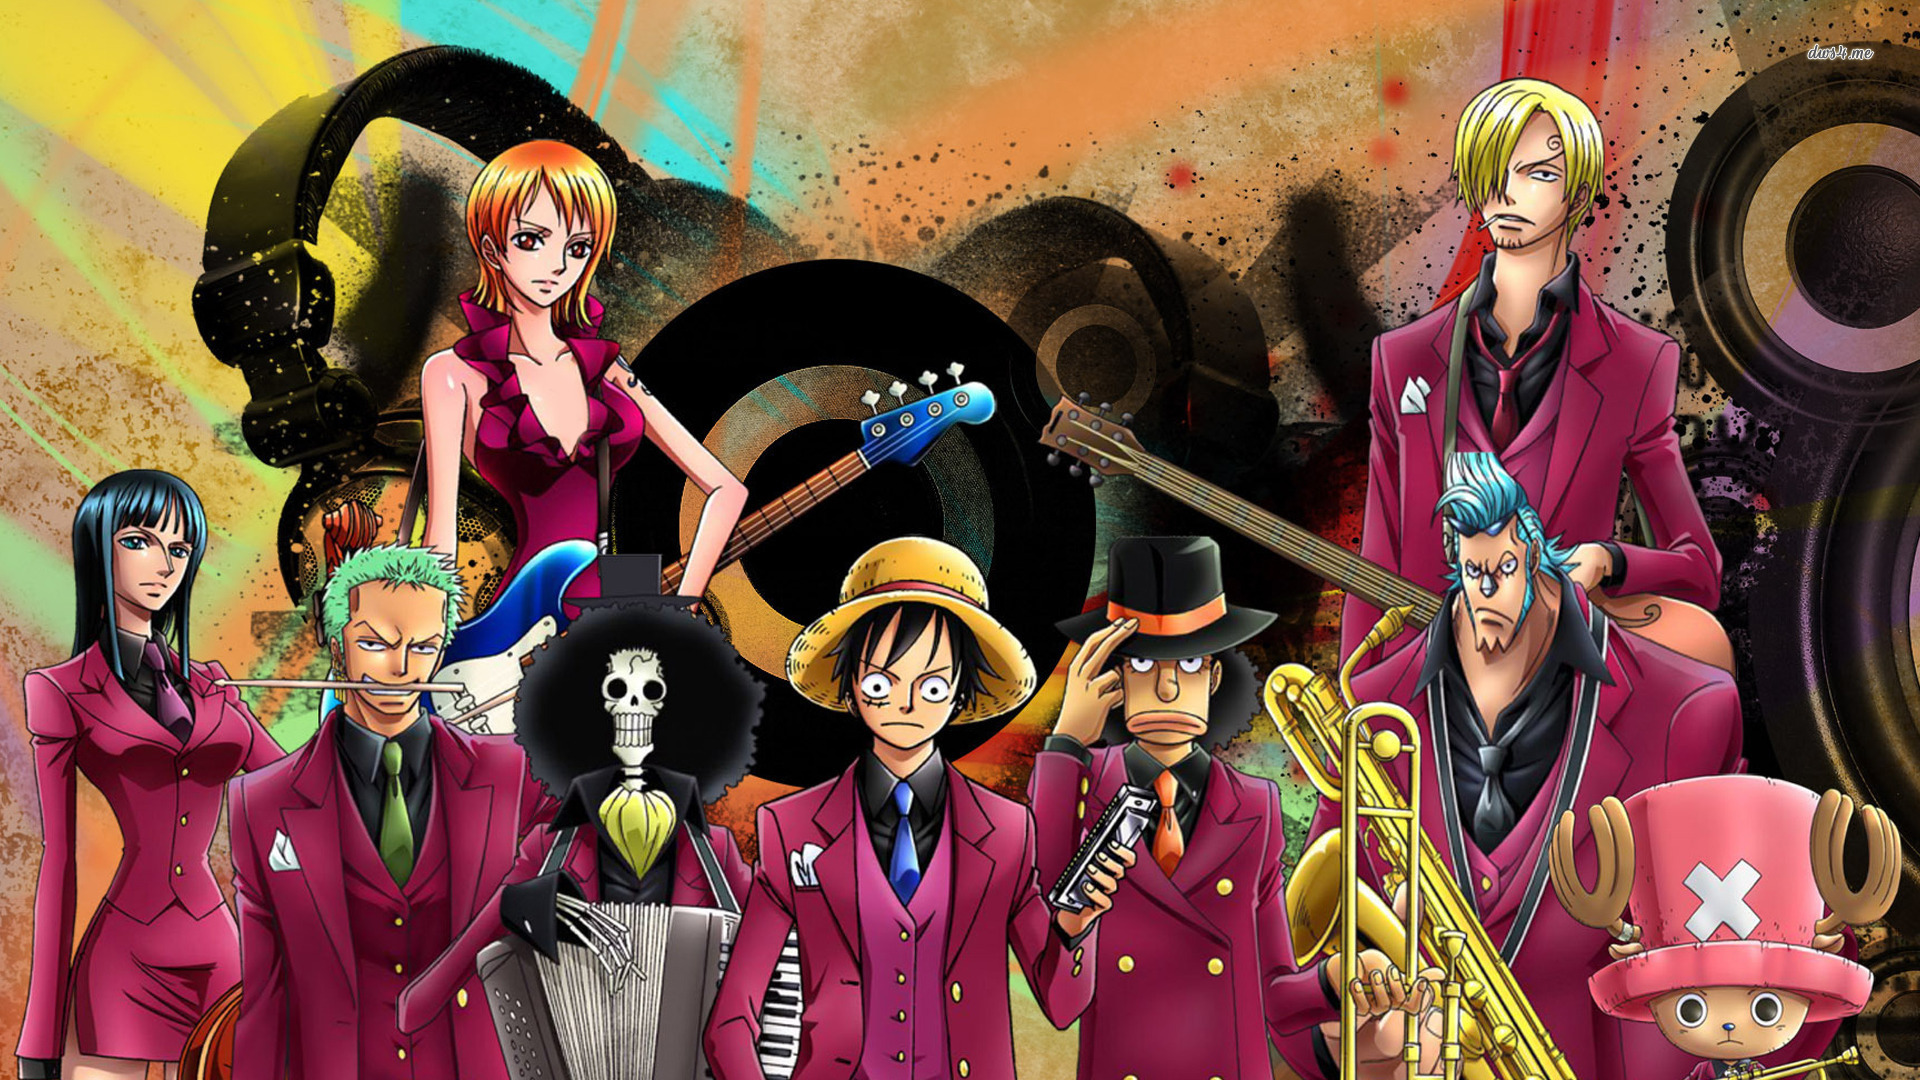 See the handpicked one piece wallpaper 4k images and share with your frends and social. One Piece Background Desktop | PixelsTalk.Net